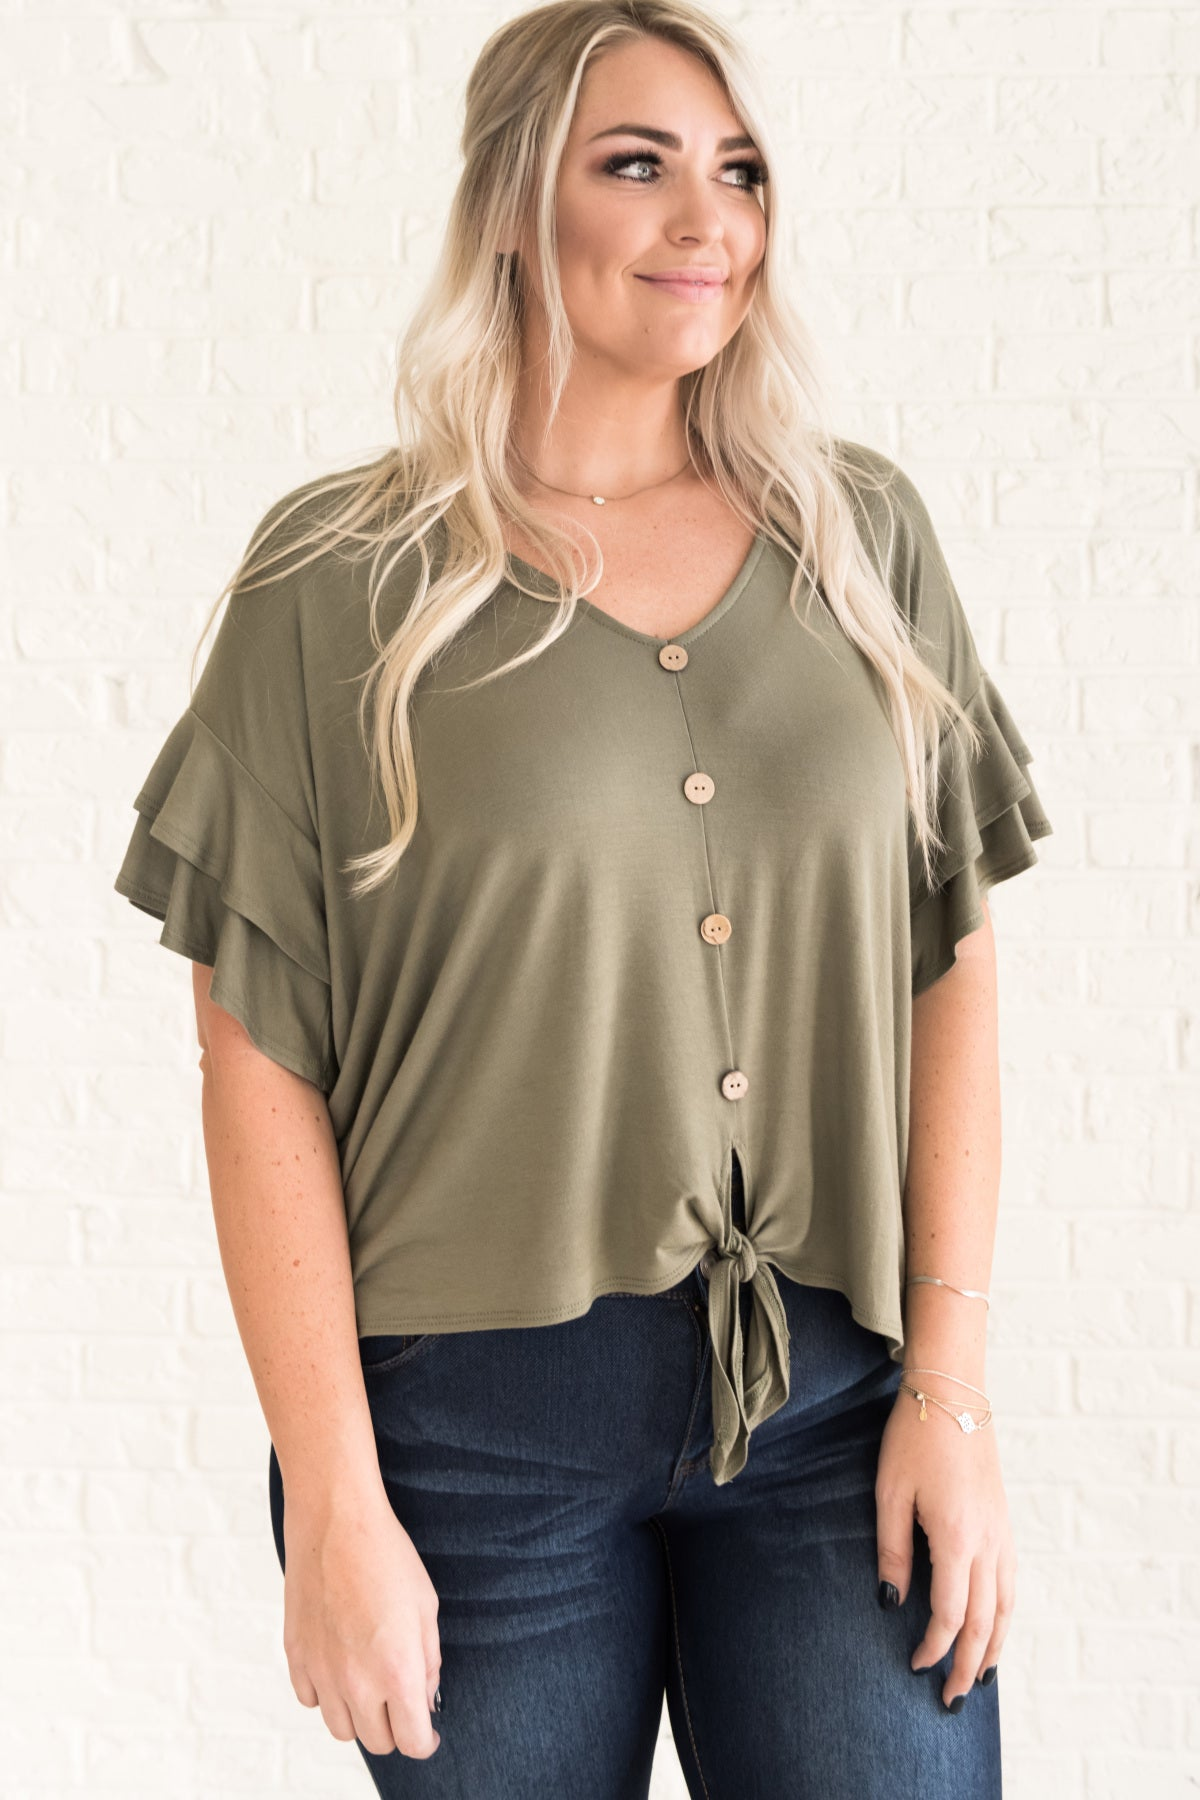 1ee9974dc84ace Olive Green Boutique Plus Size Tie Front Tops and Blouses